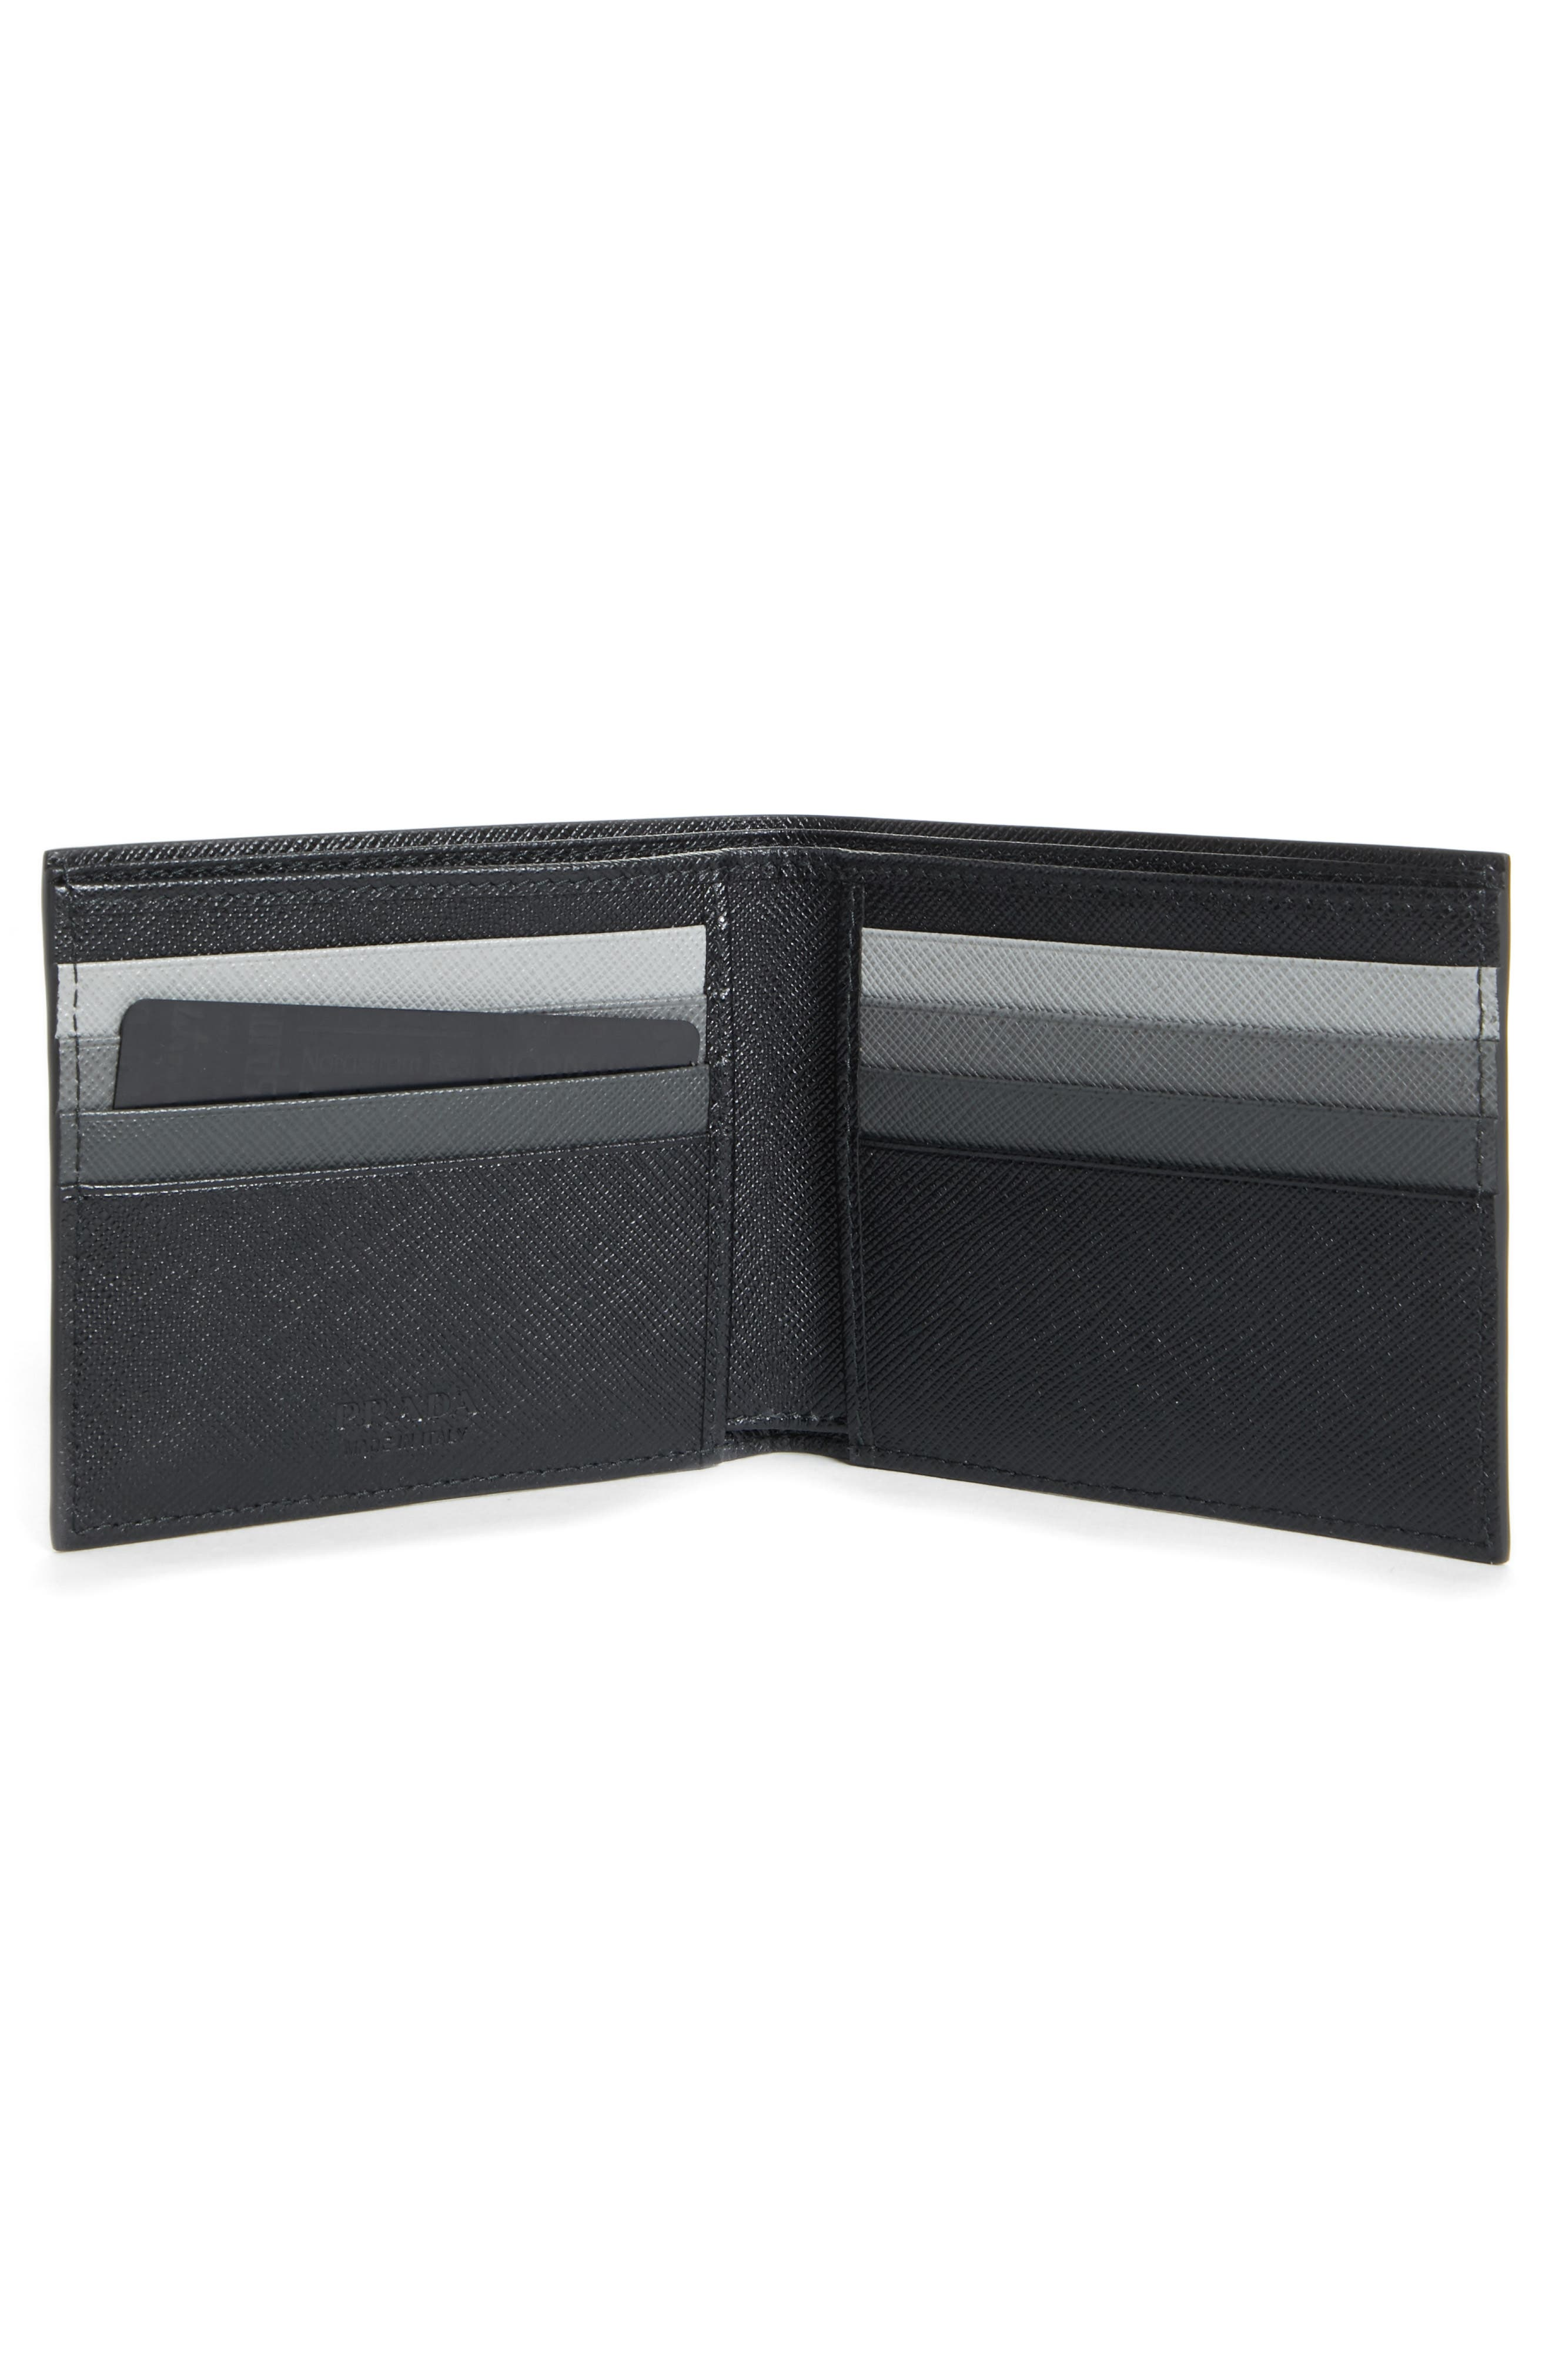 Saffiano Leather Bifold Wallet,                             Alternate thumbnail 2, color,                             001